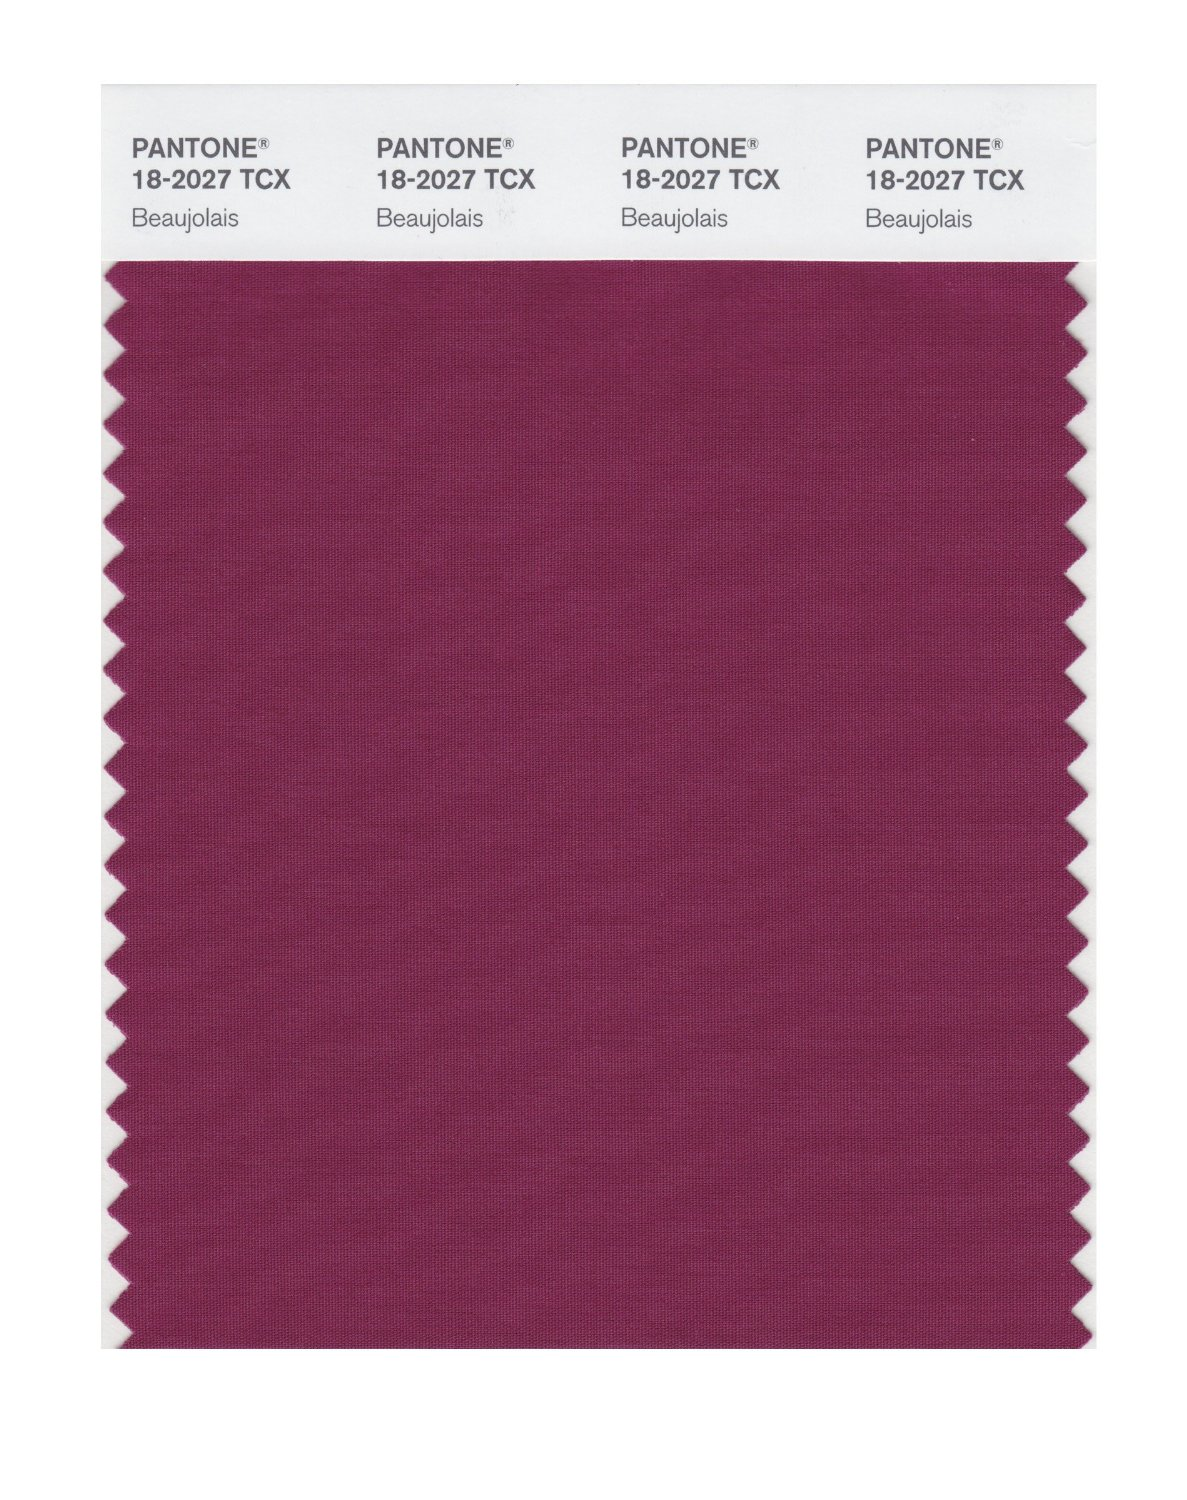 Pantone Smart Swatch 18-2027 Beaujolais